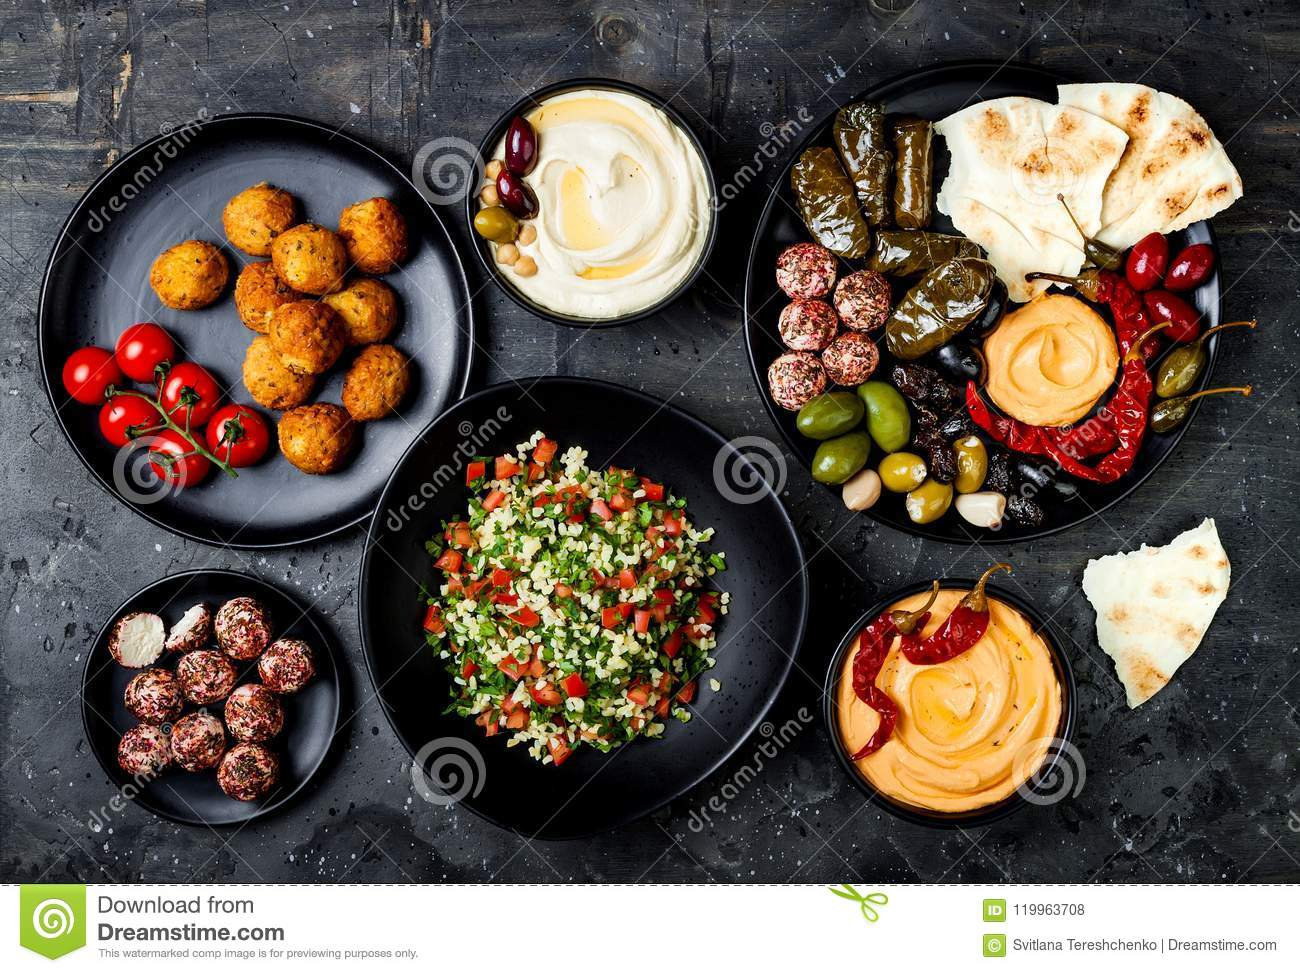 Arabic traditional cuisine. Middle Eastern meze platter with pita, olives, hummus, stuffed dolma, labneh cheese balls, falafel.